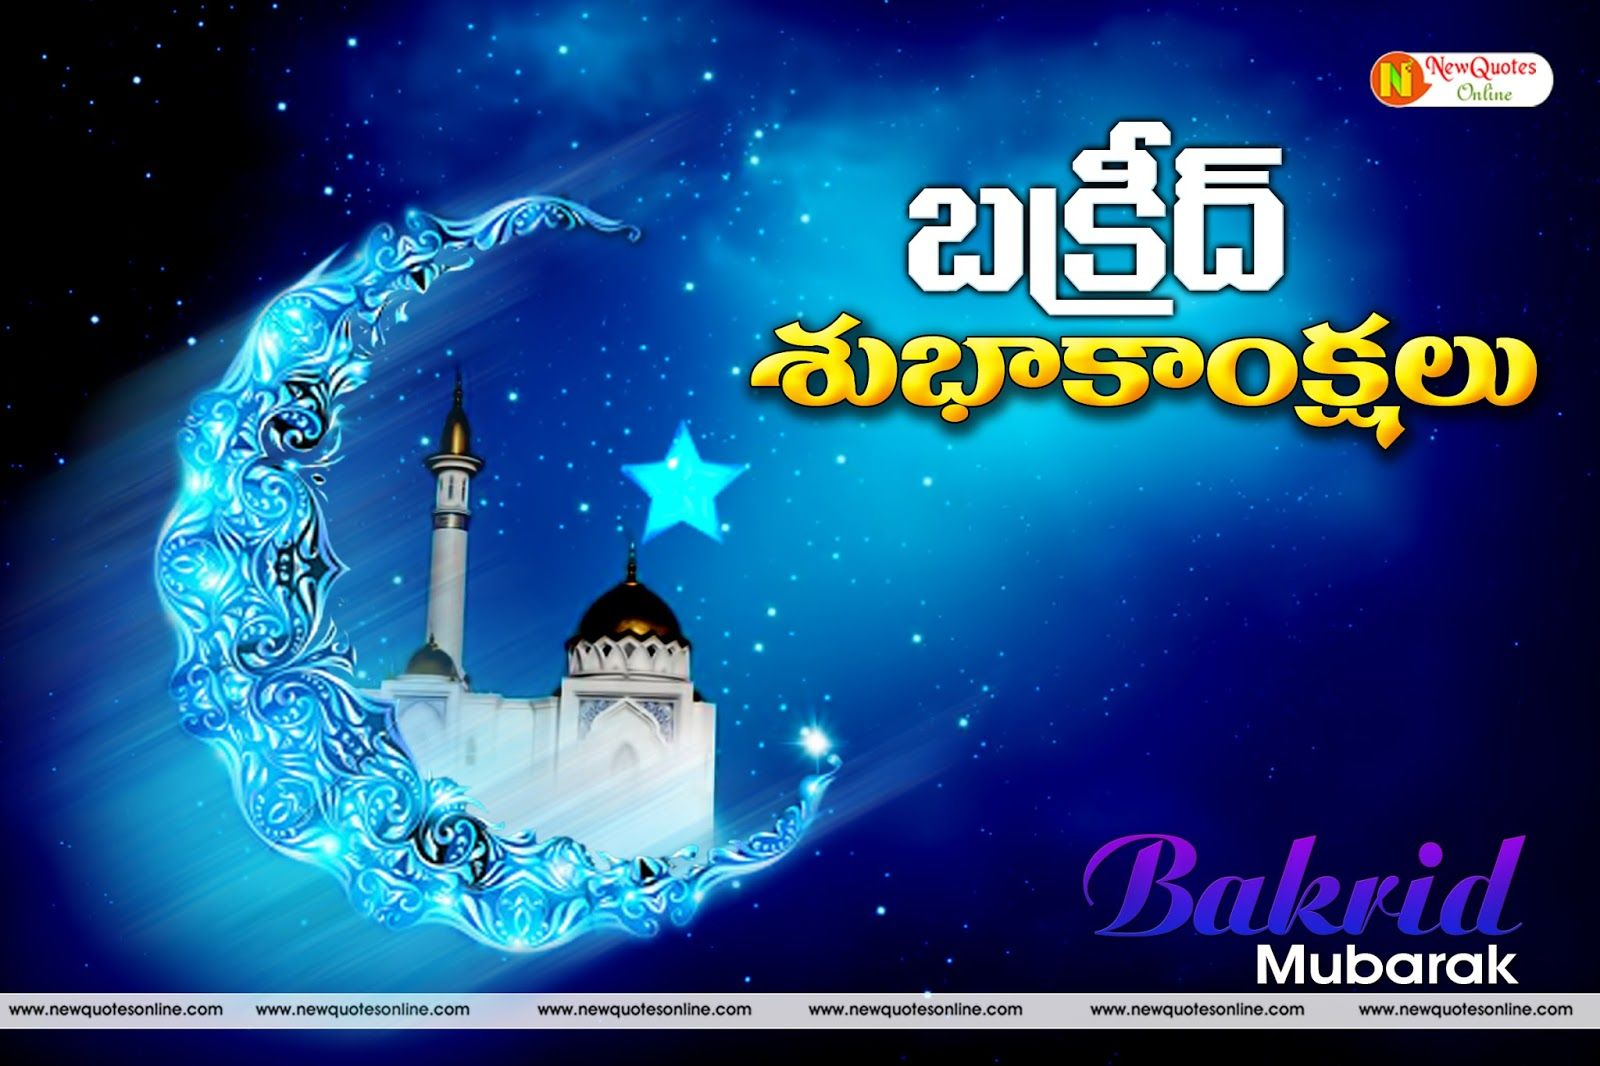 Bakrid Festival Wishes For Friends And Family Bakrid Greeting Cards